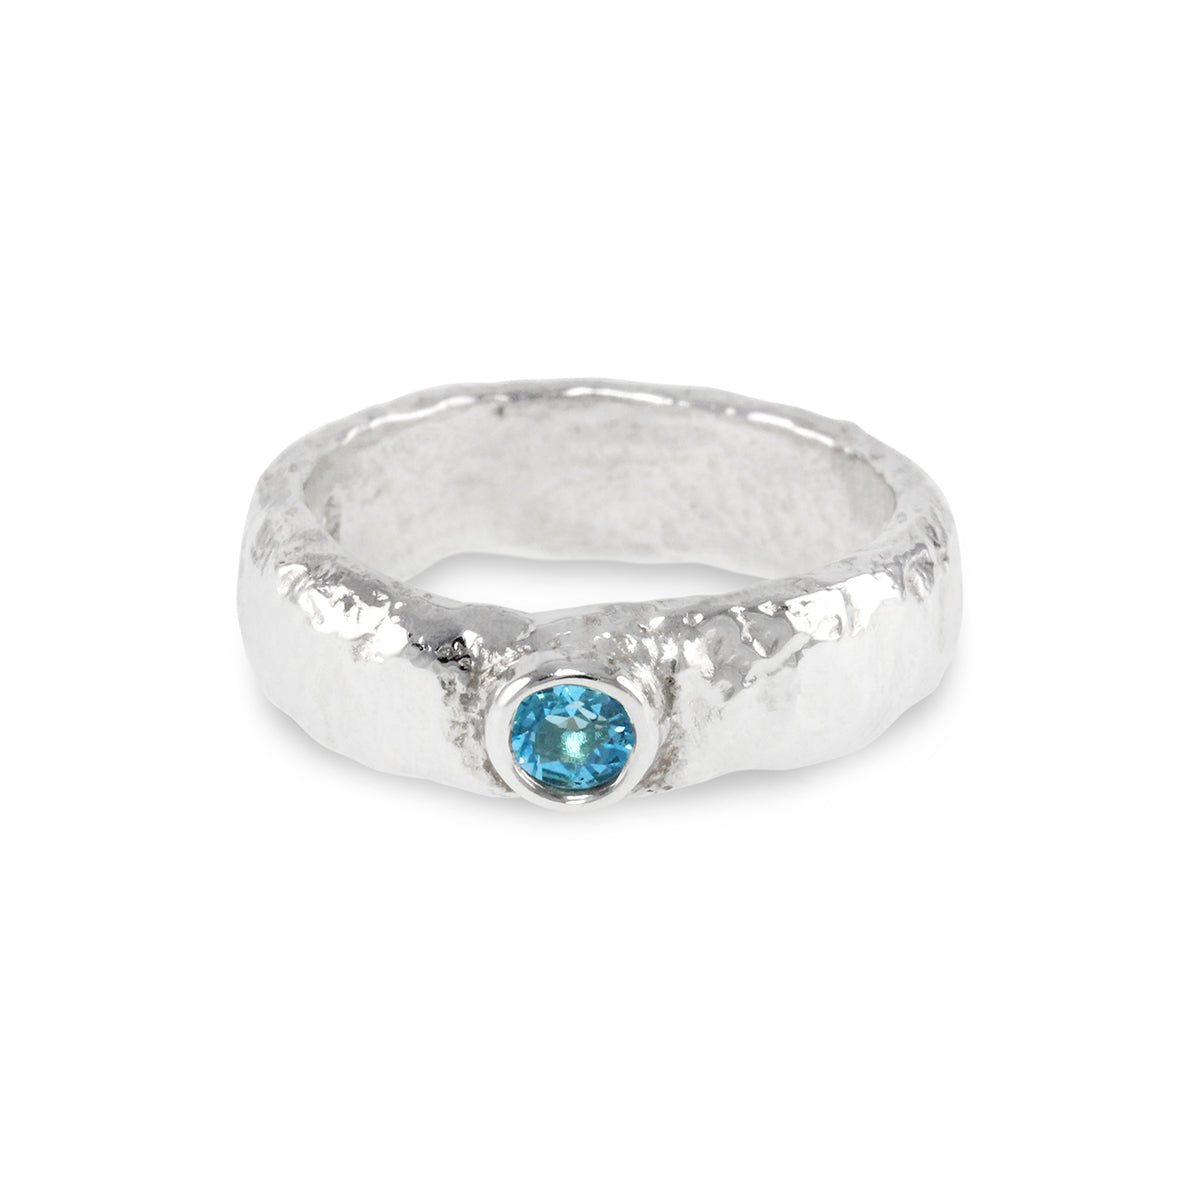 Handmade ring in sterling silver set with blue topaz gemstone. - Paul Magen